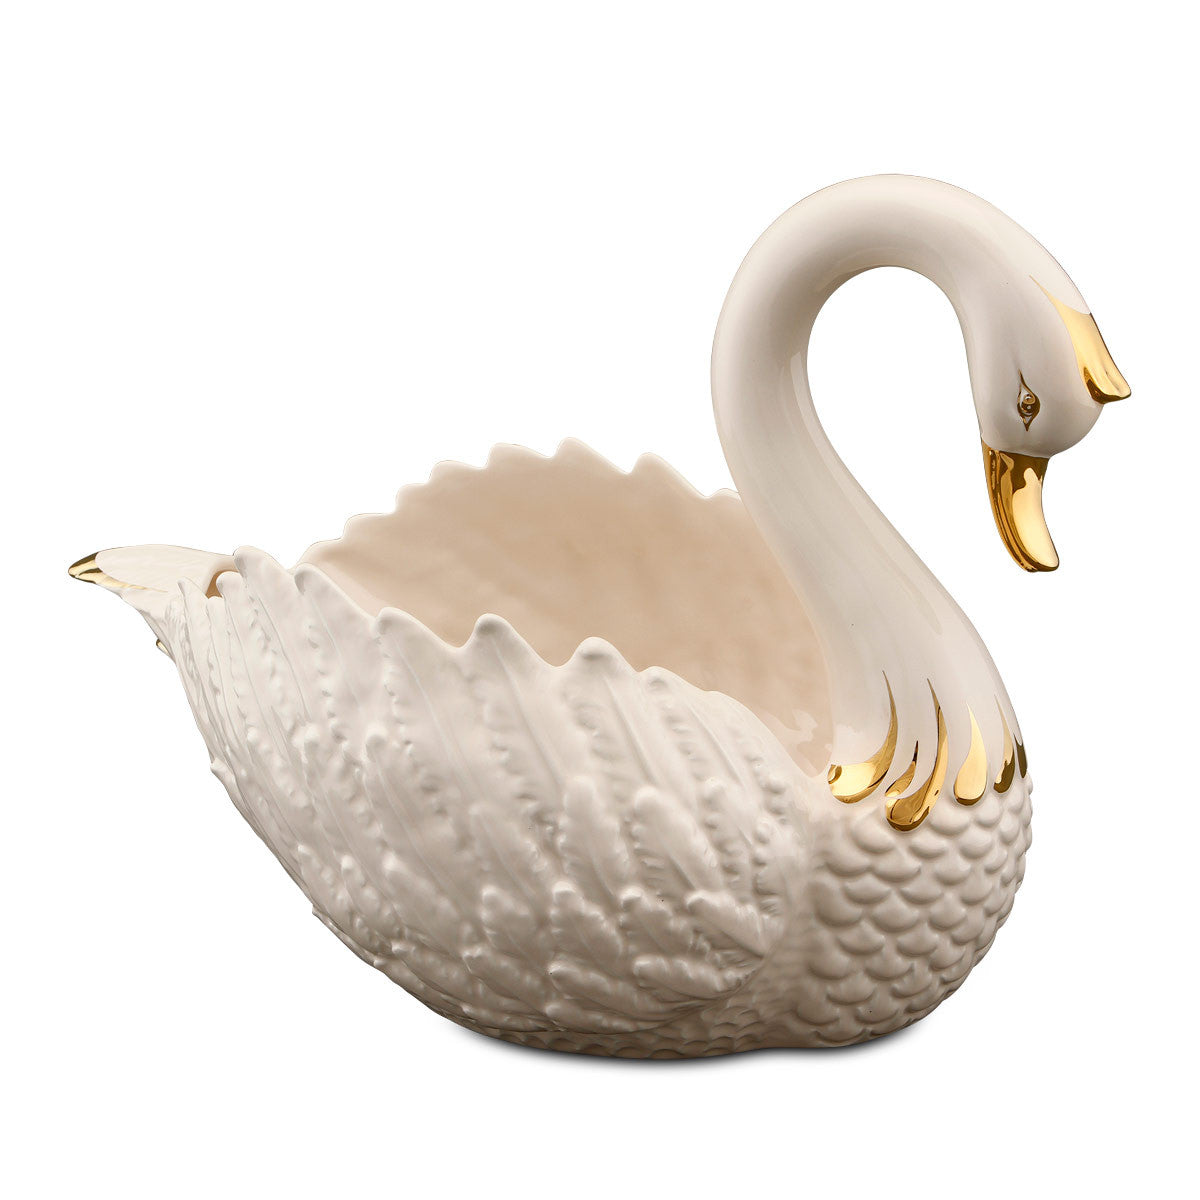 Ceramic swan planter with gold decor